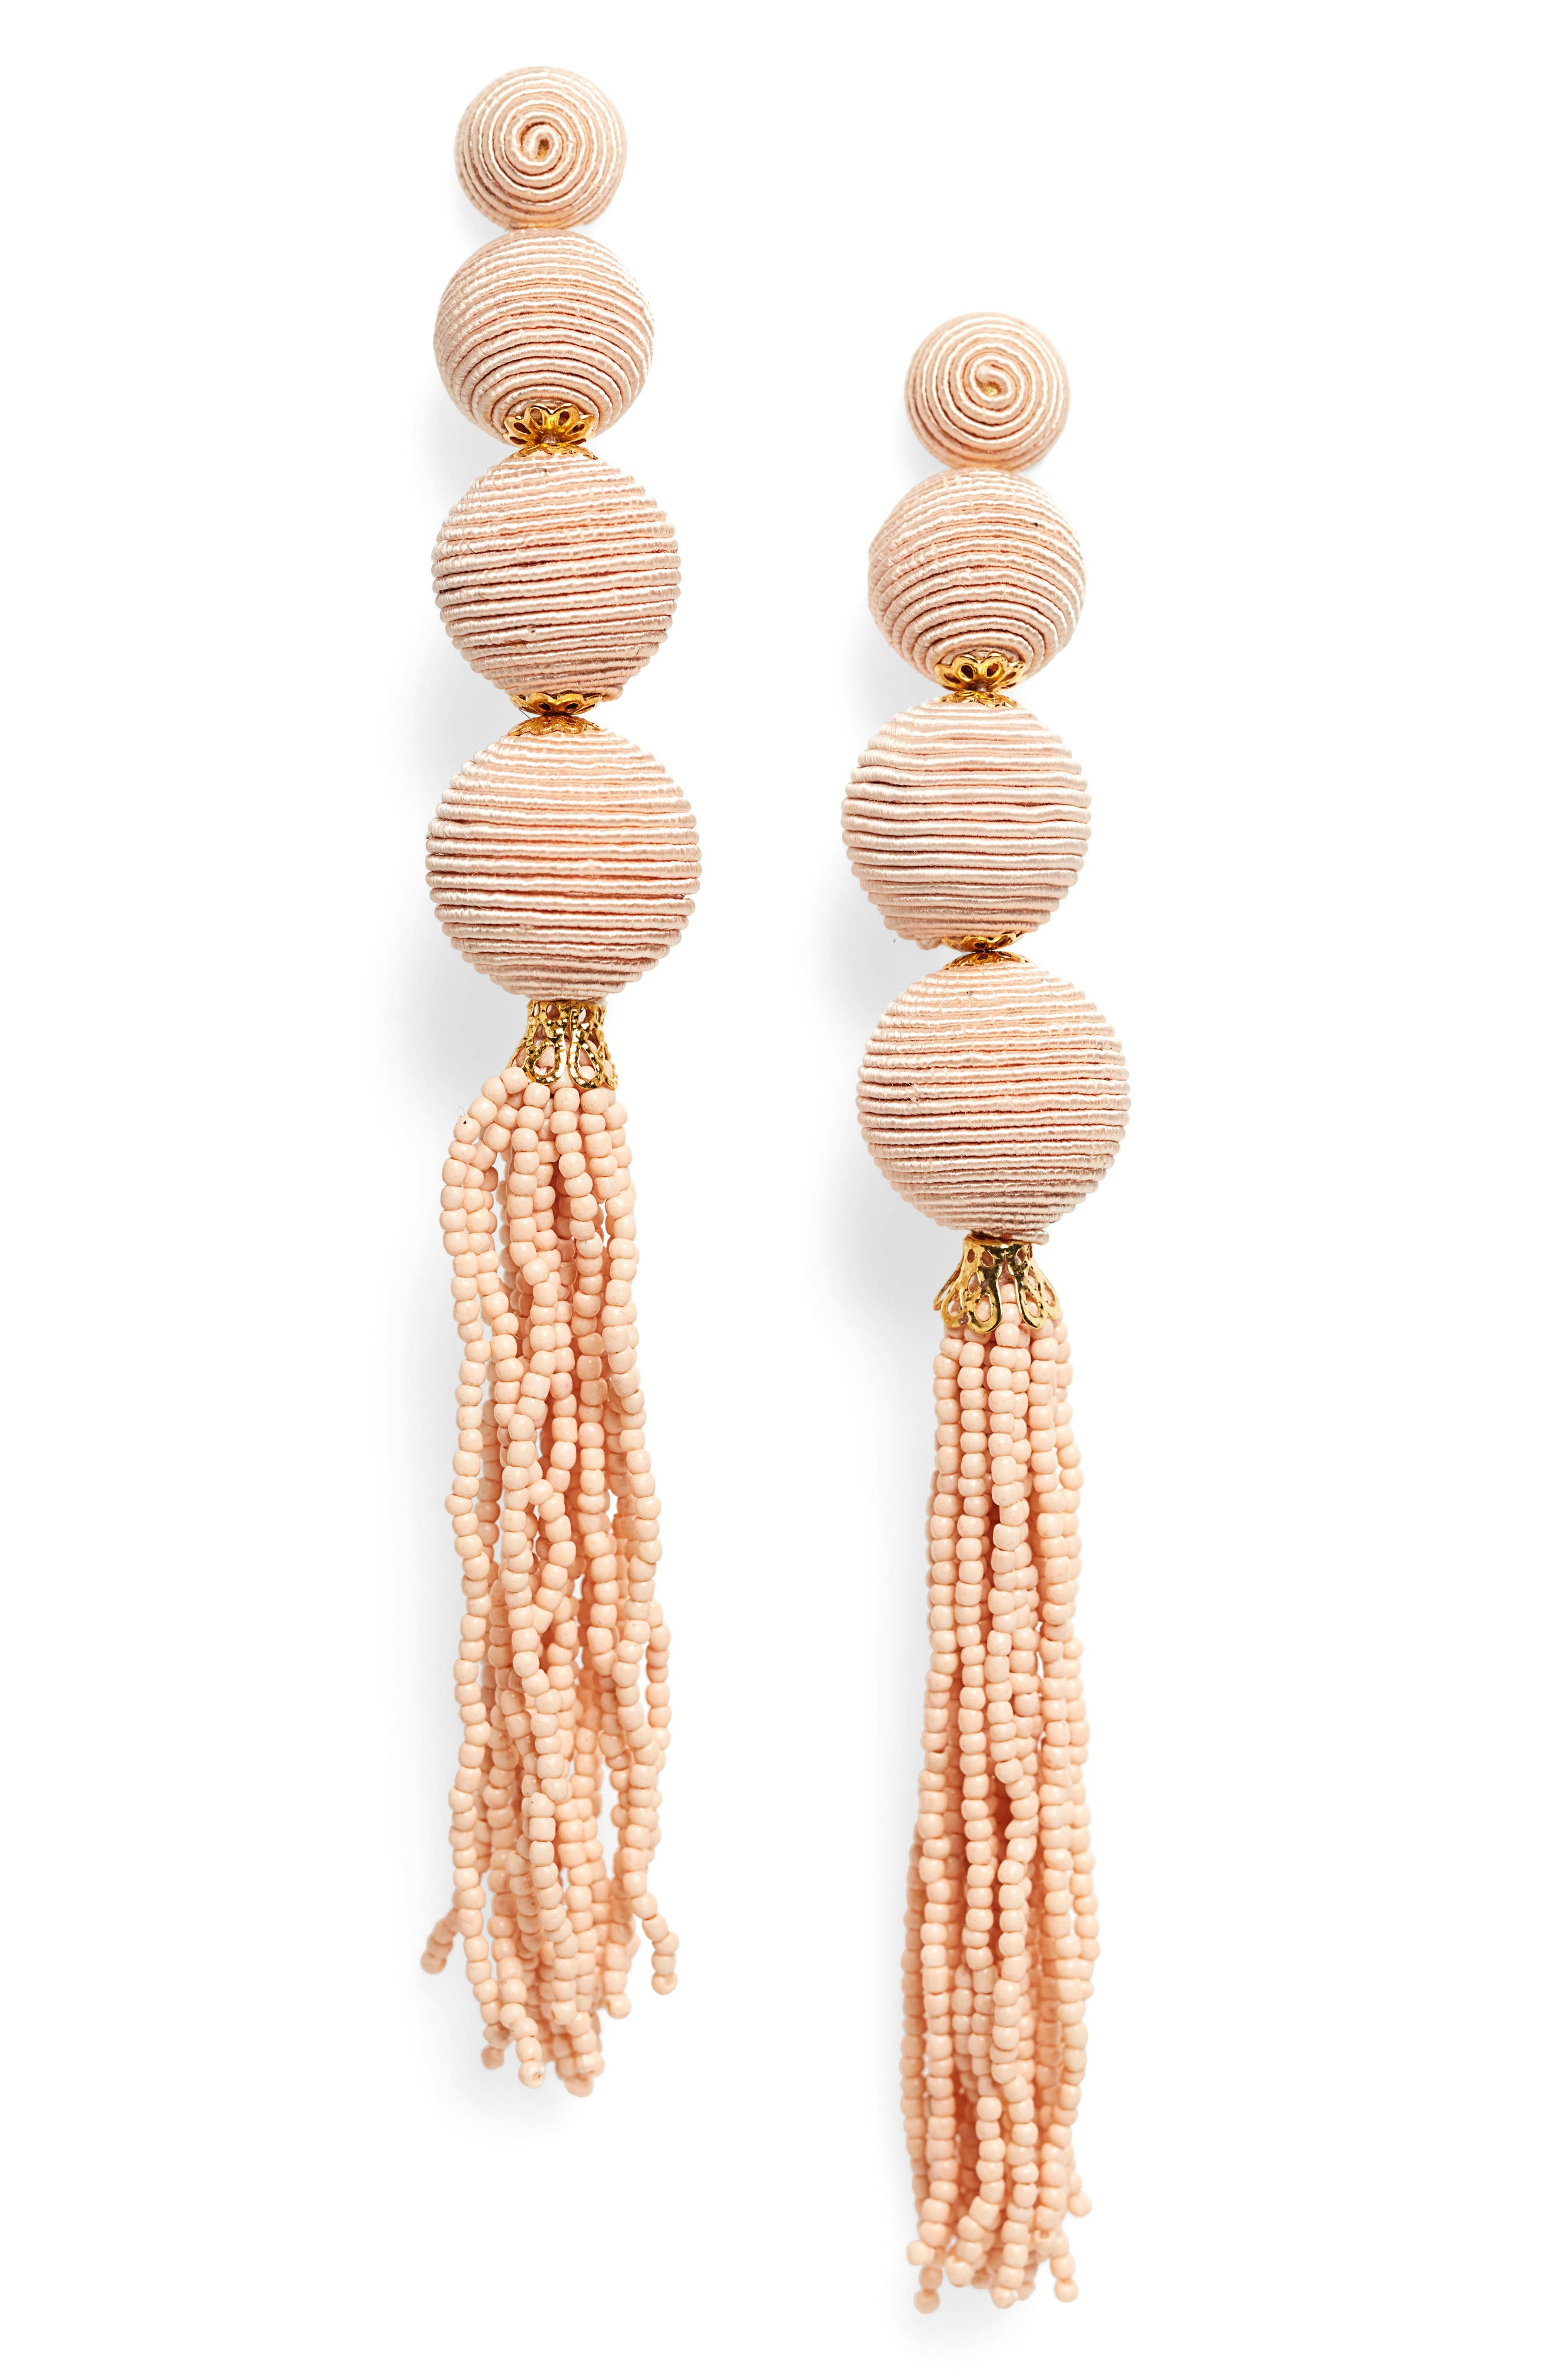 Wrapped Ball & Tassel Statement Earrings,                             Main thumbnail 1, color,                             Beige